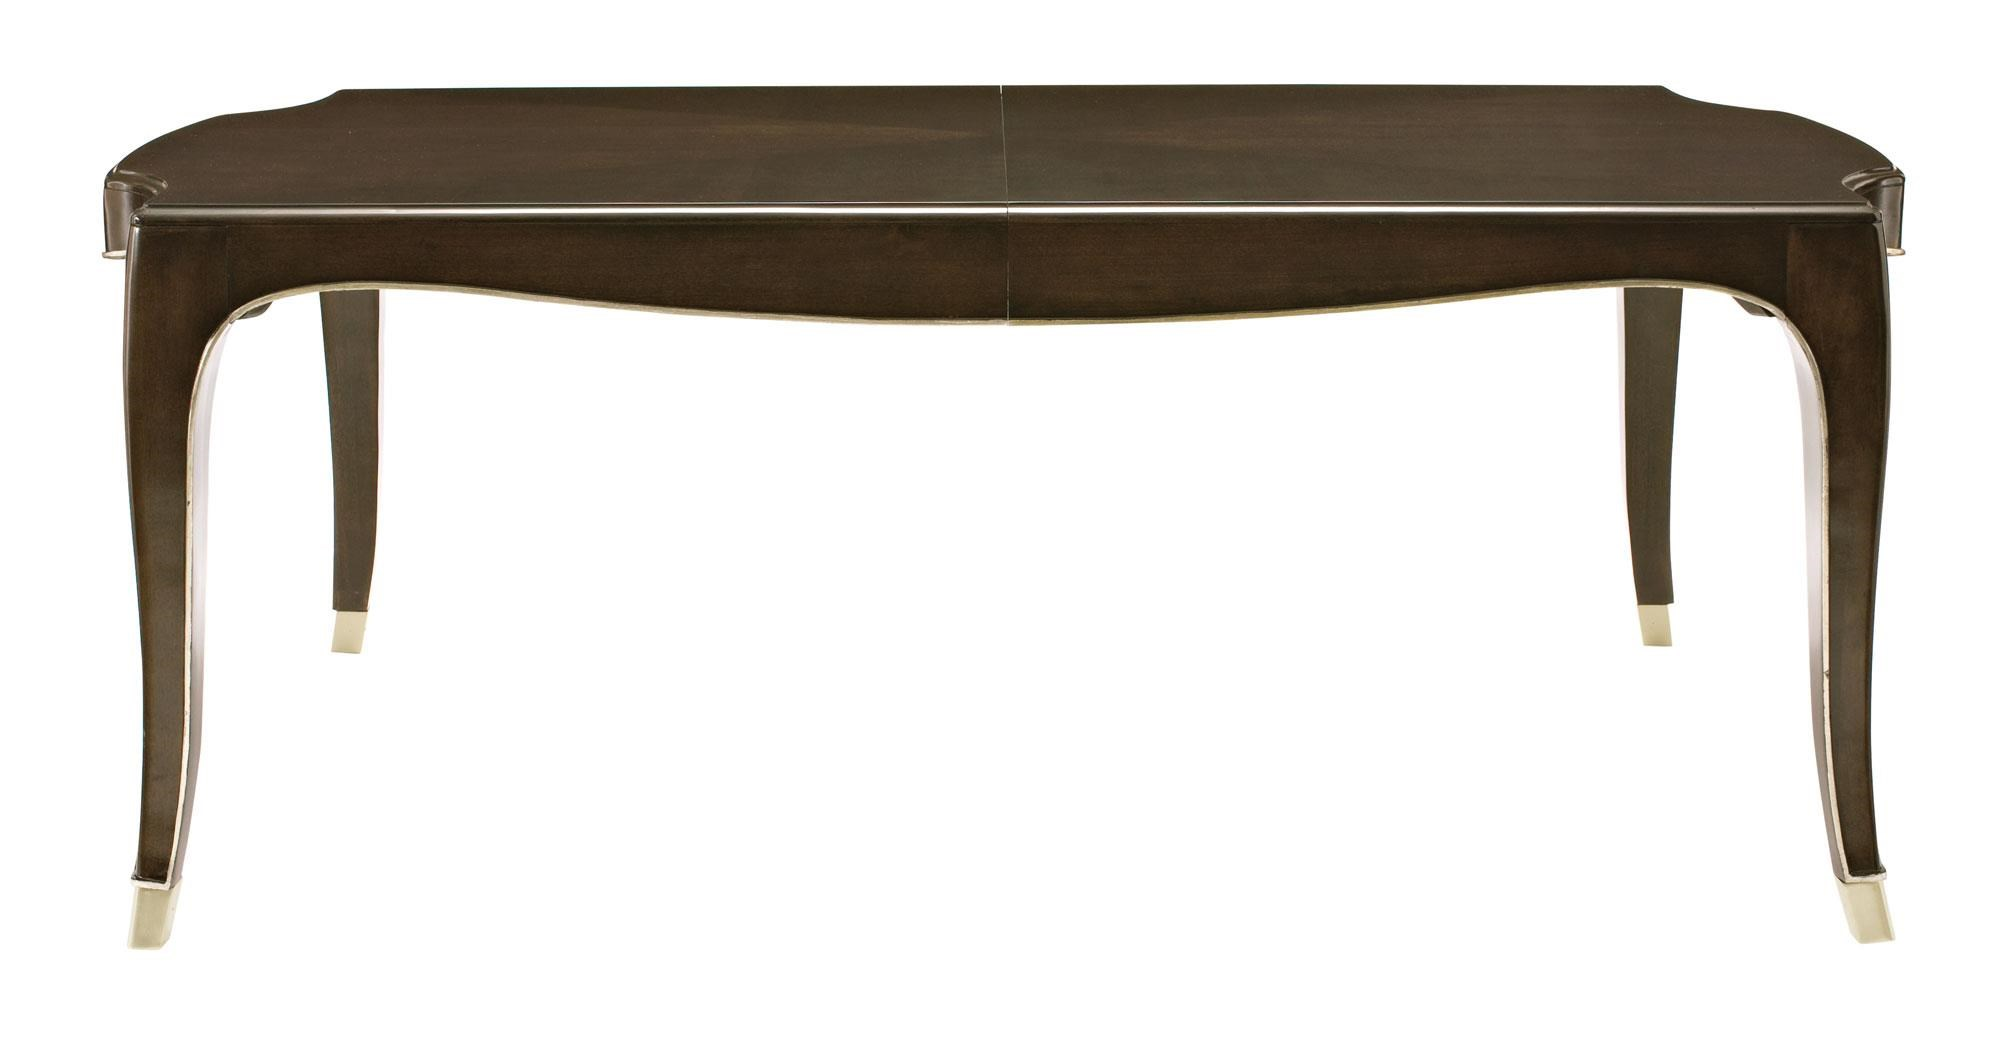 Bernhardt Miramont 360-222 Dining Table : Baeru0026#39;s Furniture ...